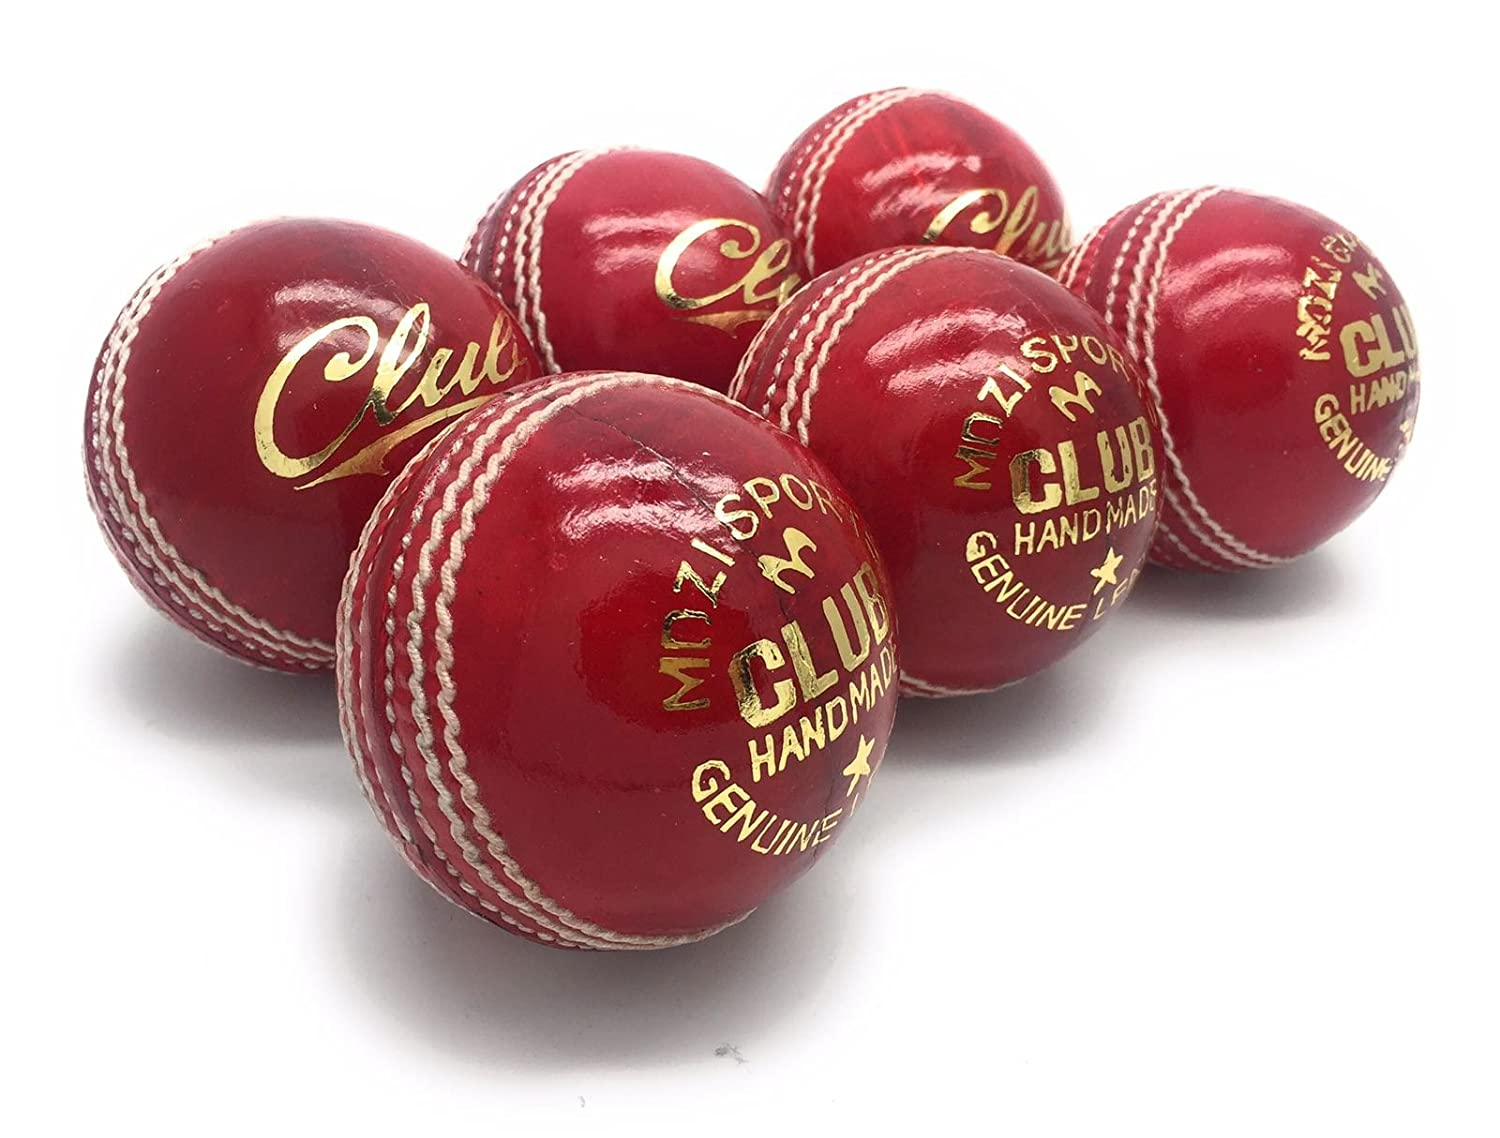 Mozi Sports Men Hand Stitched Club County Cricket Ball Grade A Senior Official Balls Pack Of 6 Weight 5.5oz